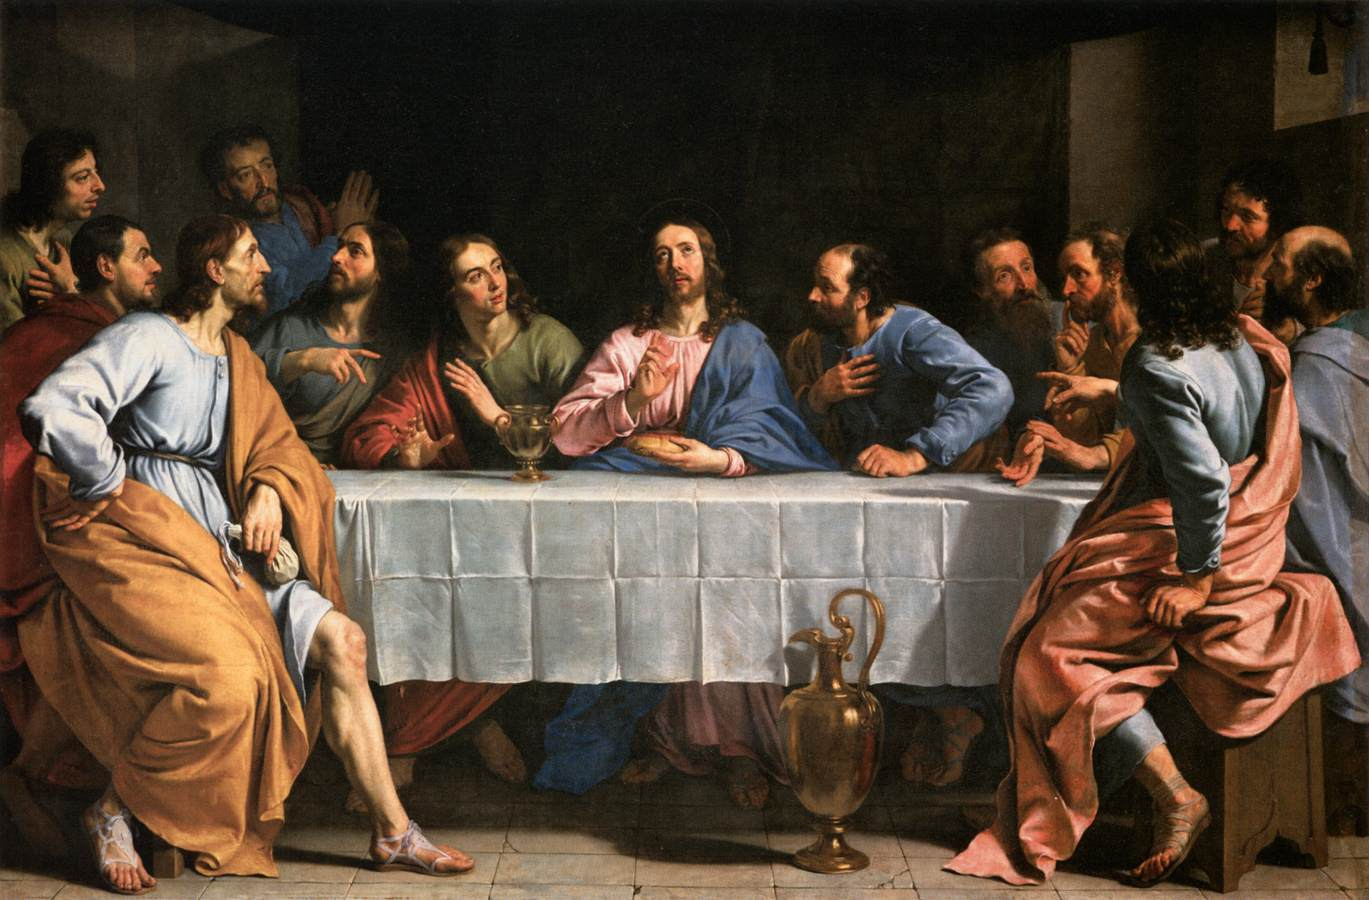 Philippe_de_Champaigne_-_The_Last_Supper_-_WGA4710-1510592806.jpg